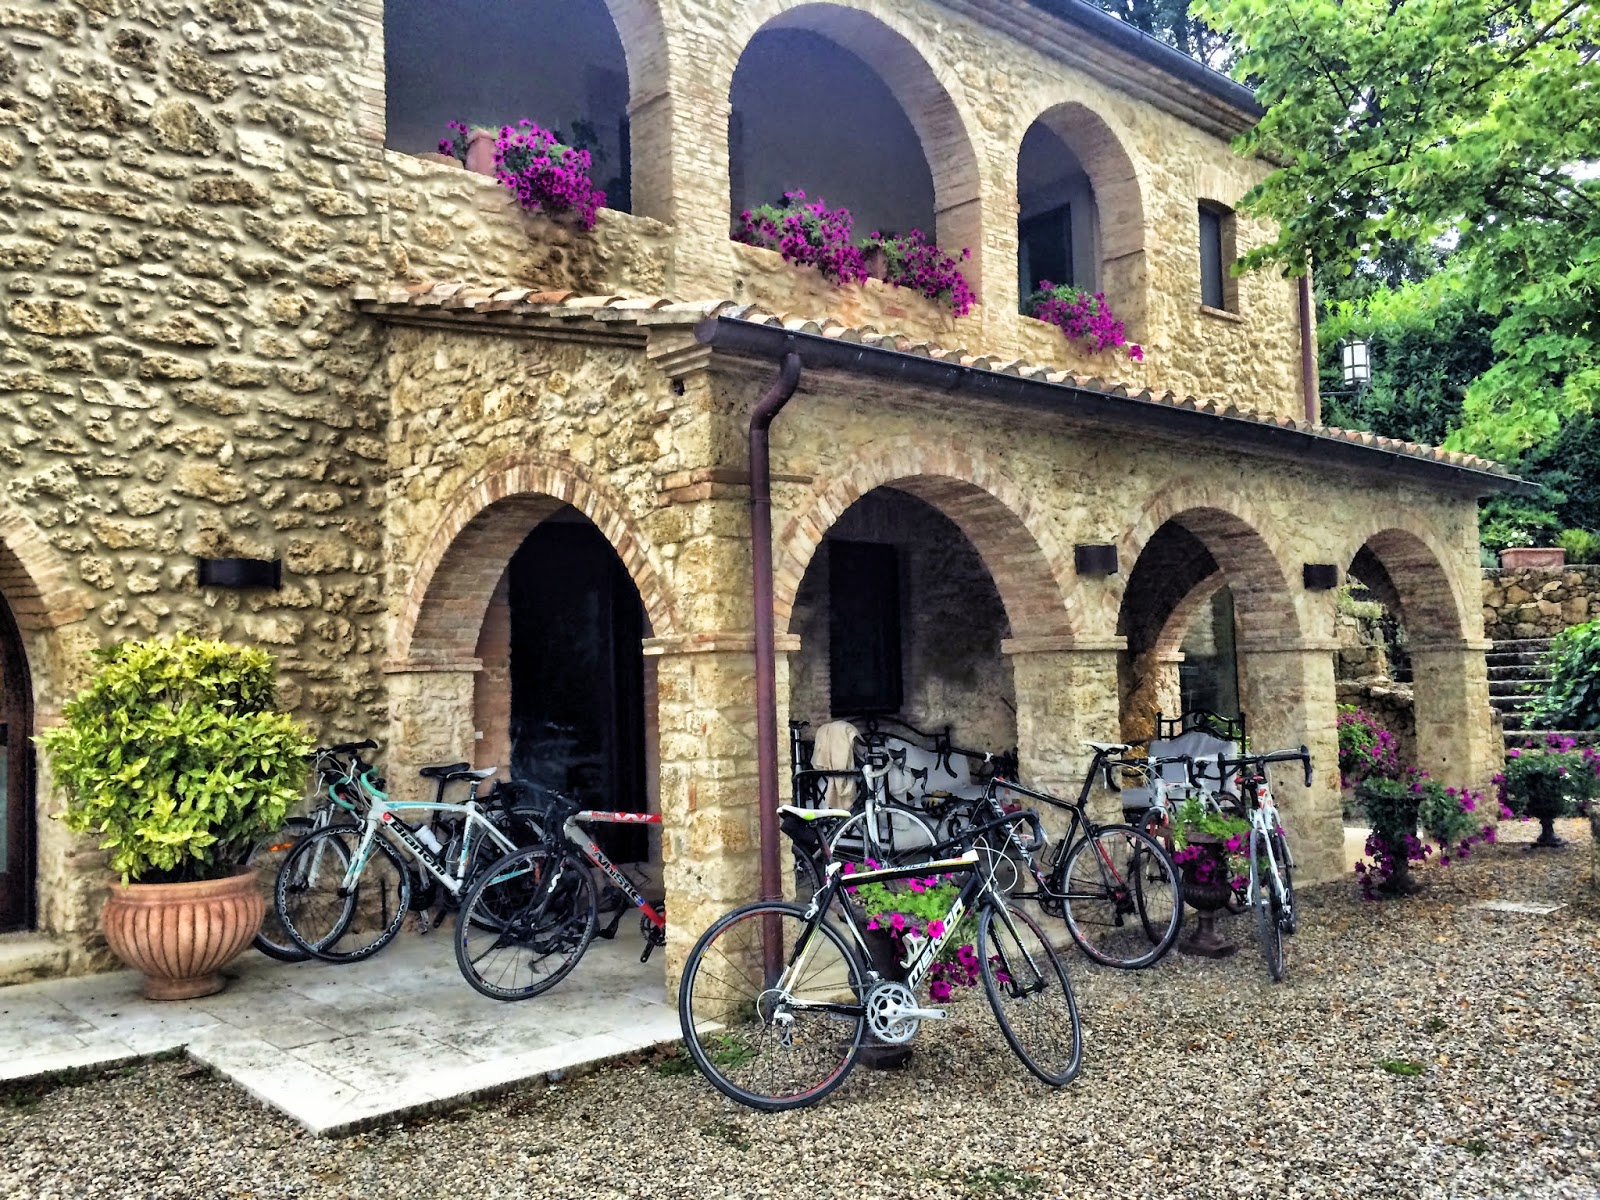 bicycle rental shop in sarteano siena